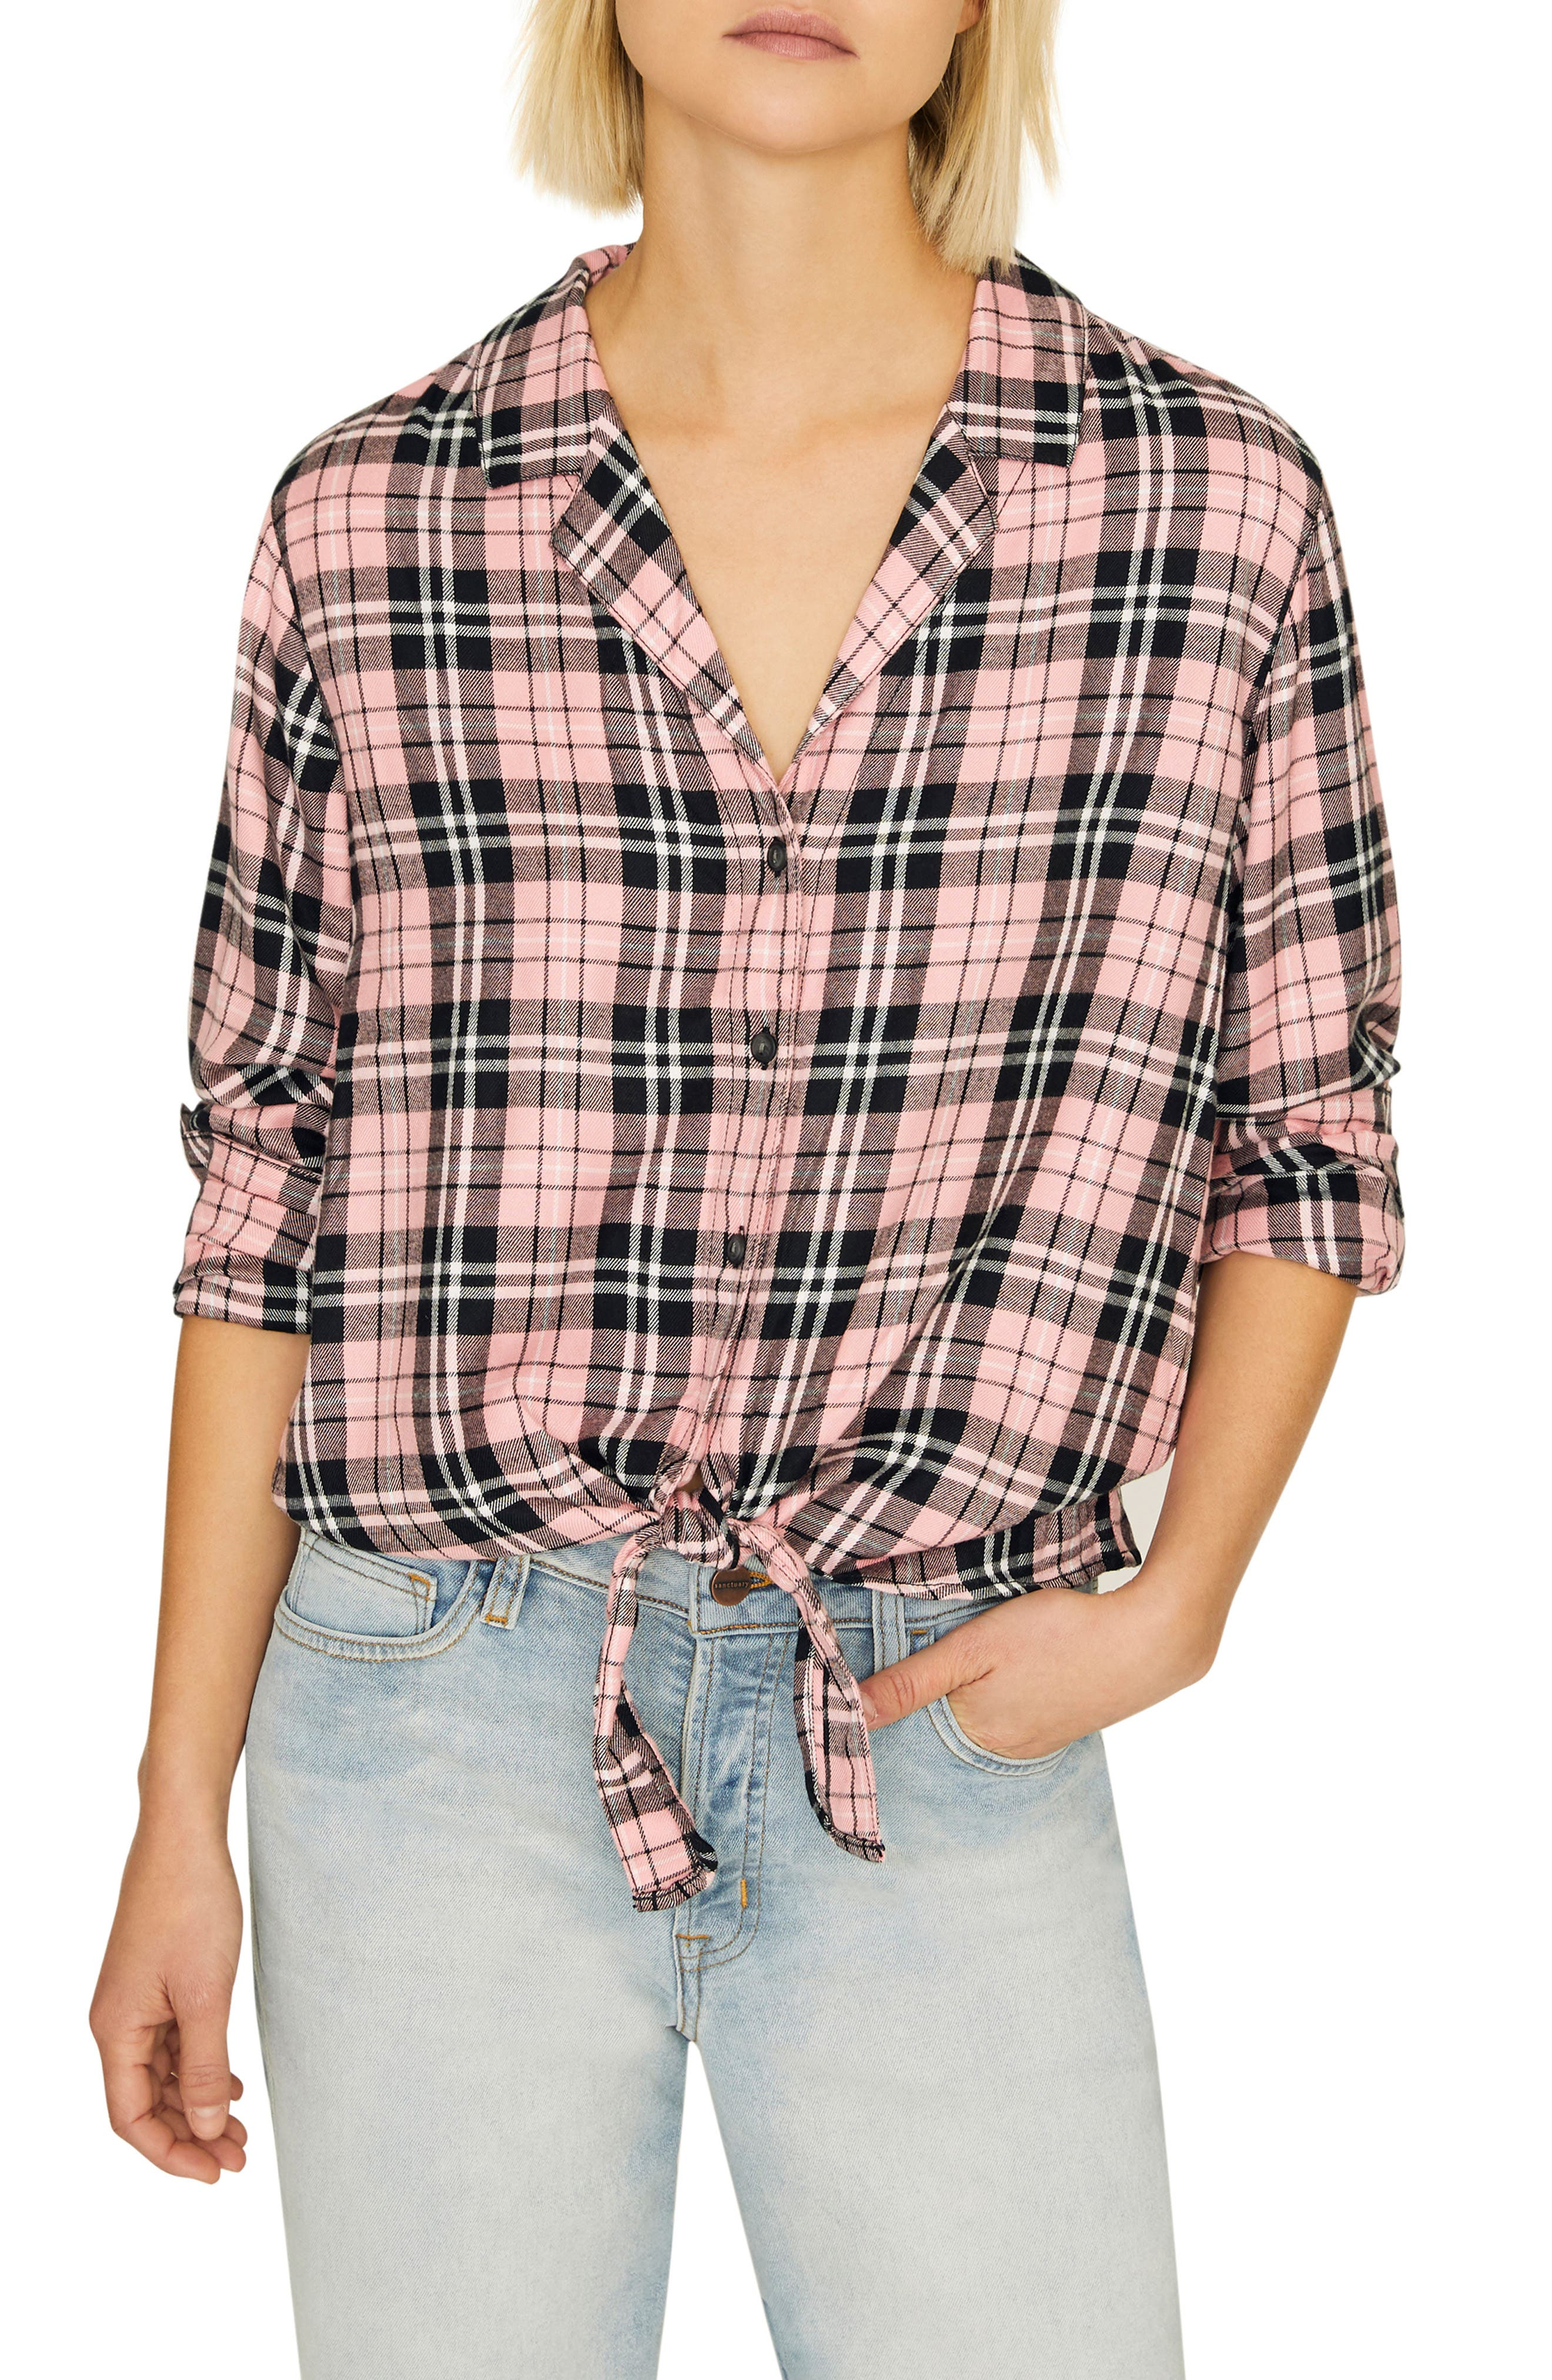 Haley Plaid Tie-Hem Shirt in After Party Plaid